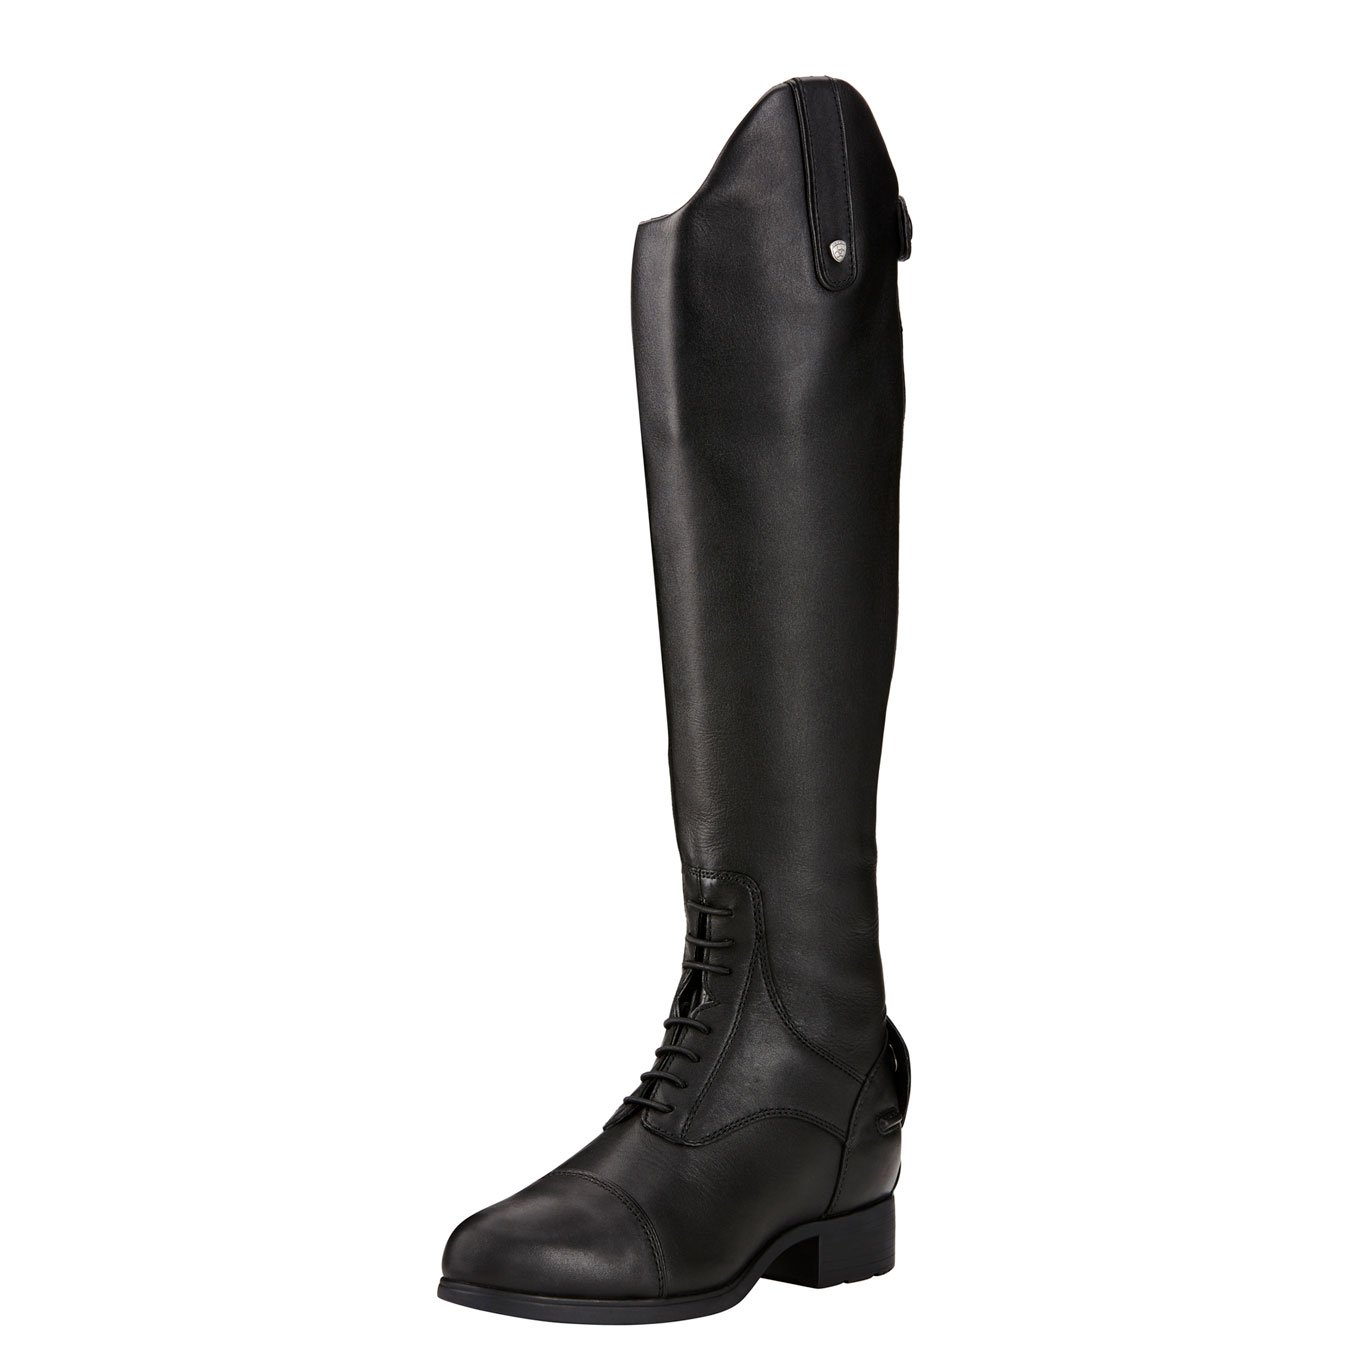 ARIAT Damen Winterreitstiefel BROMONT PRO TALL H2O insulated